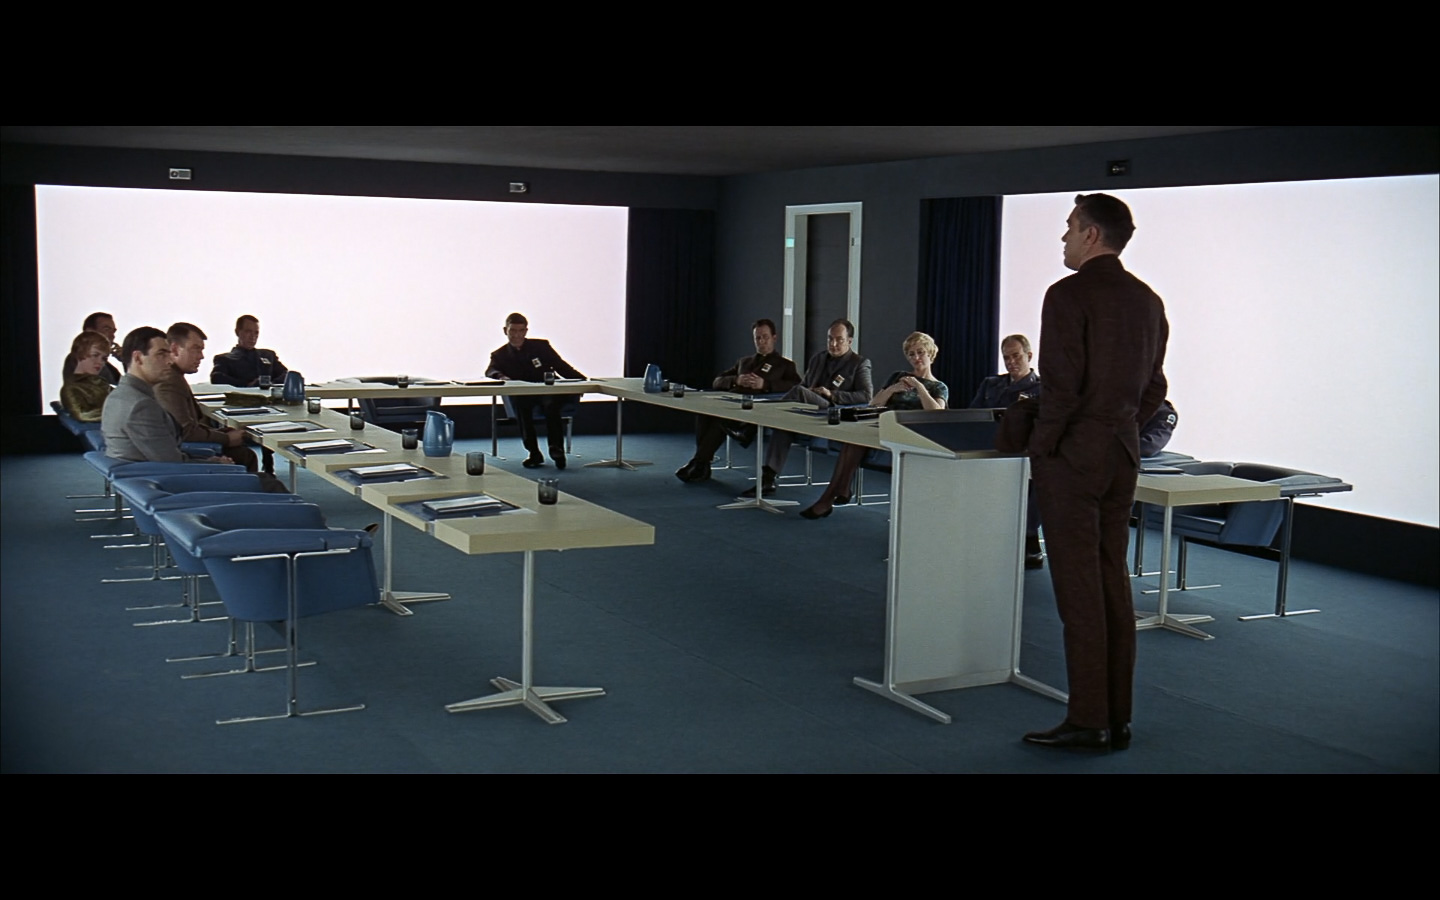 space odyssey - camera work - war room-3